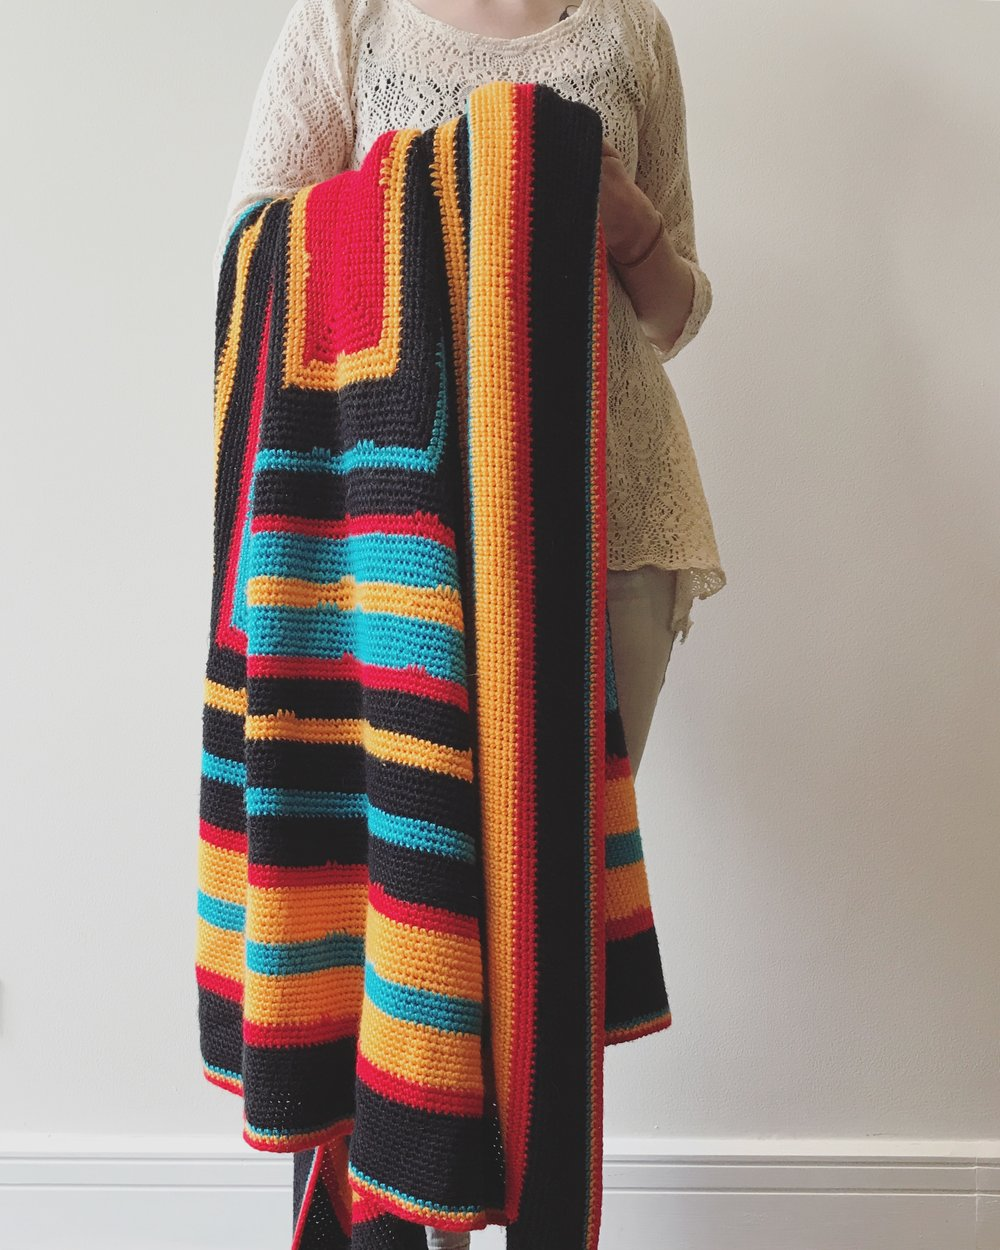 WelcomeBlanket - 2000 Miles of Warm Welcome.Join the movement. Click for more info.